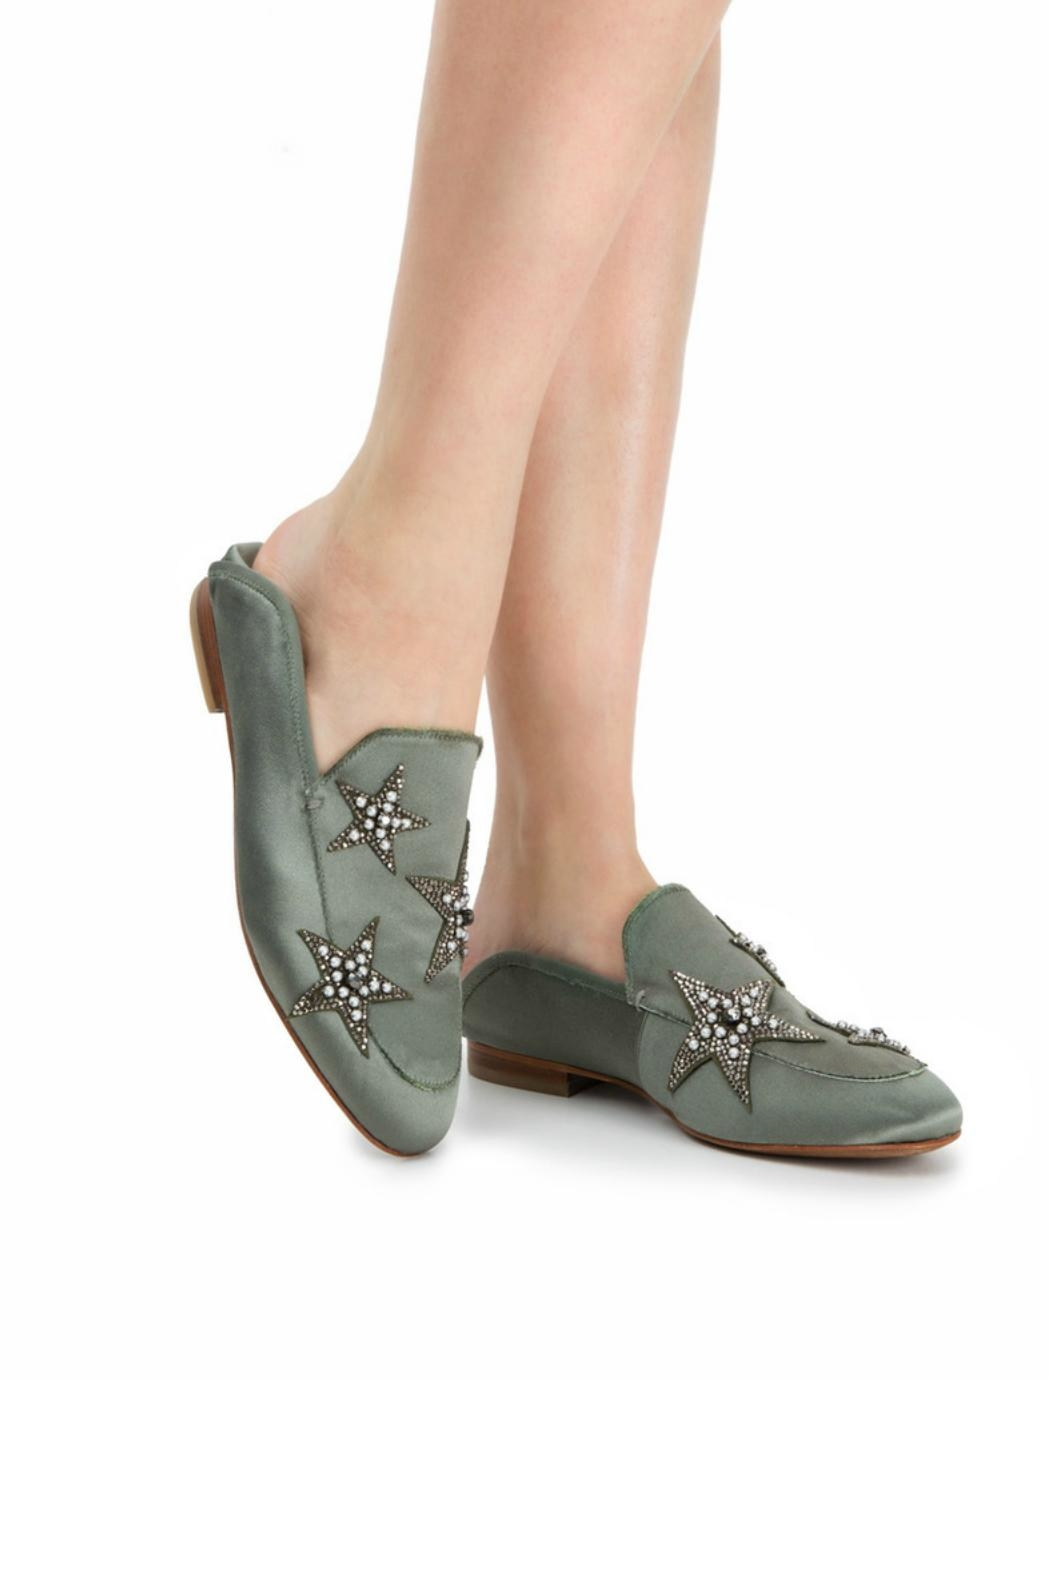 Lola Cruz Mimosa Star Loafer - Front Cropped Image